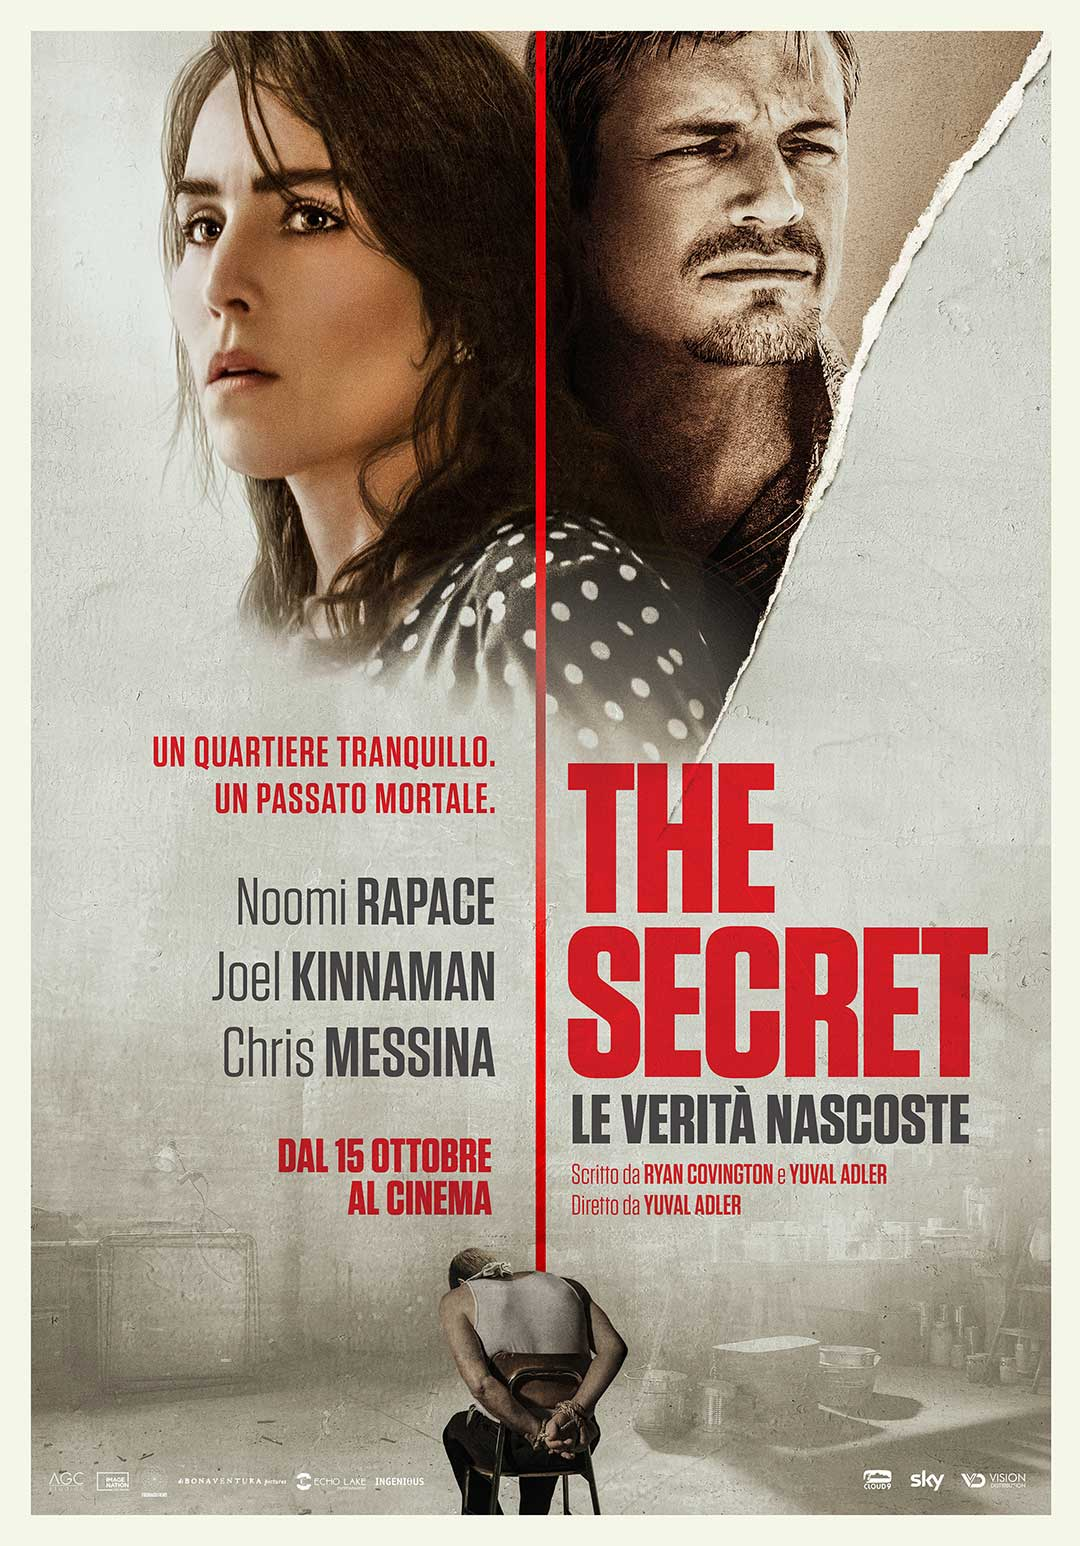 The Secret • al cinema dal 15 ottobre